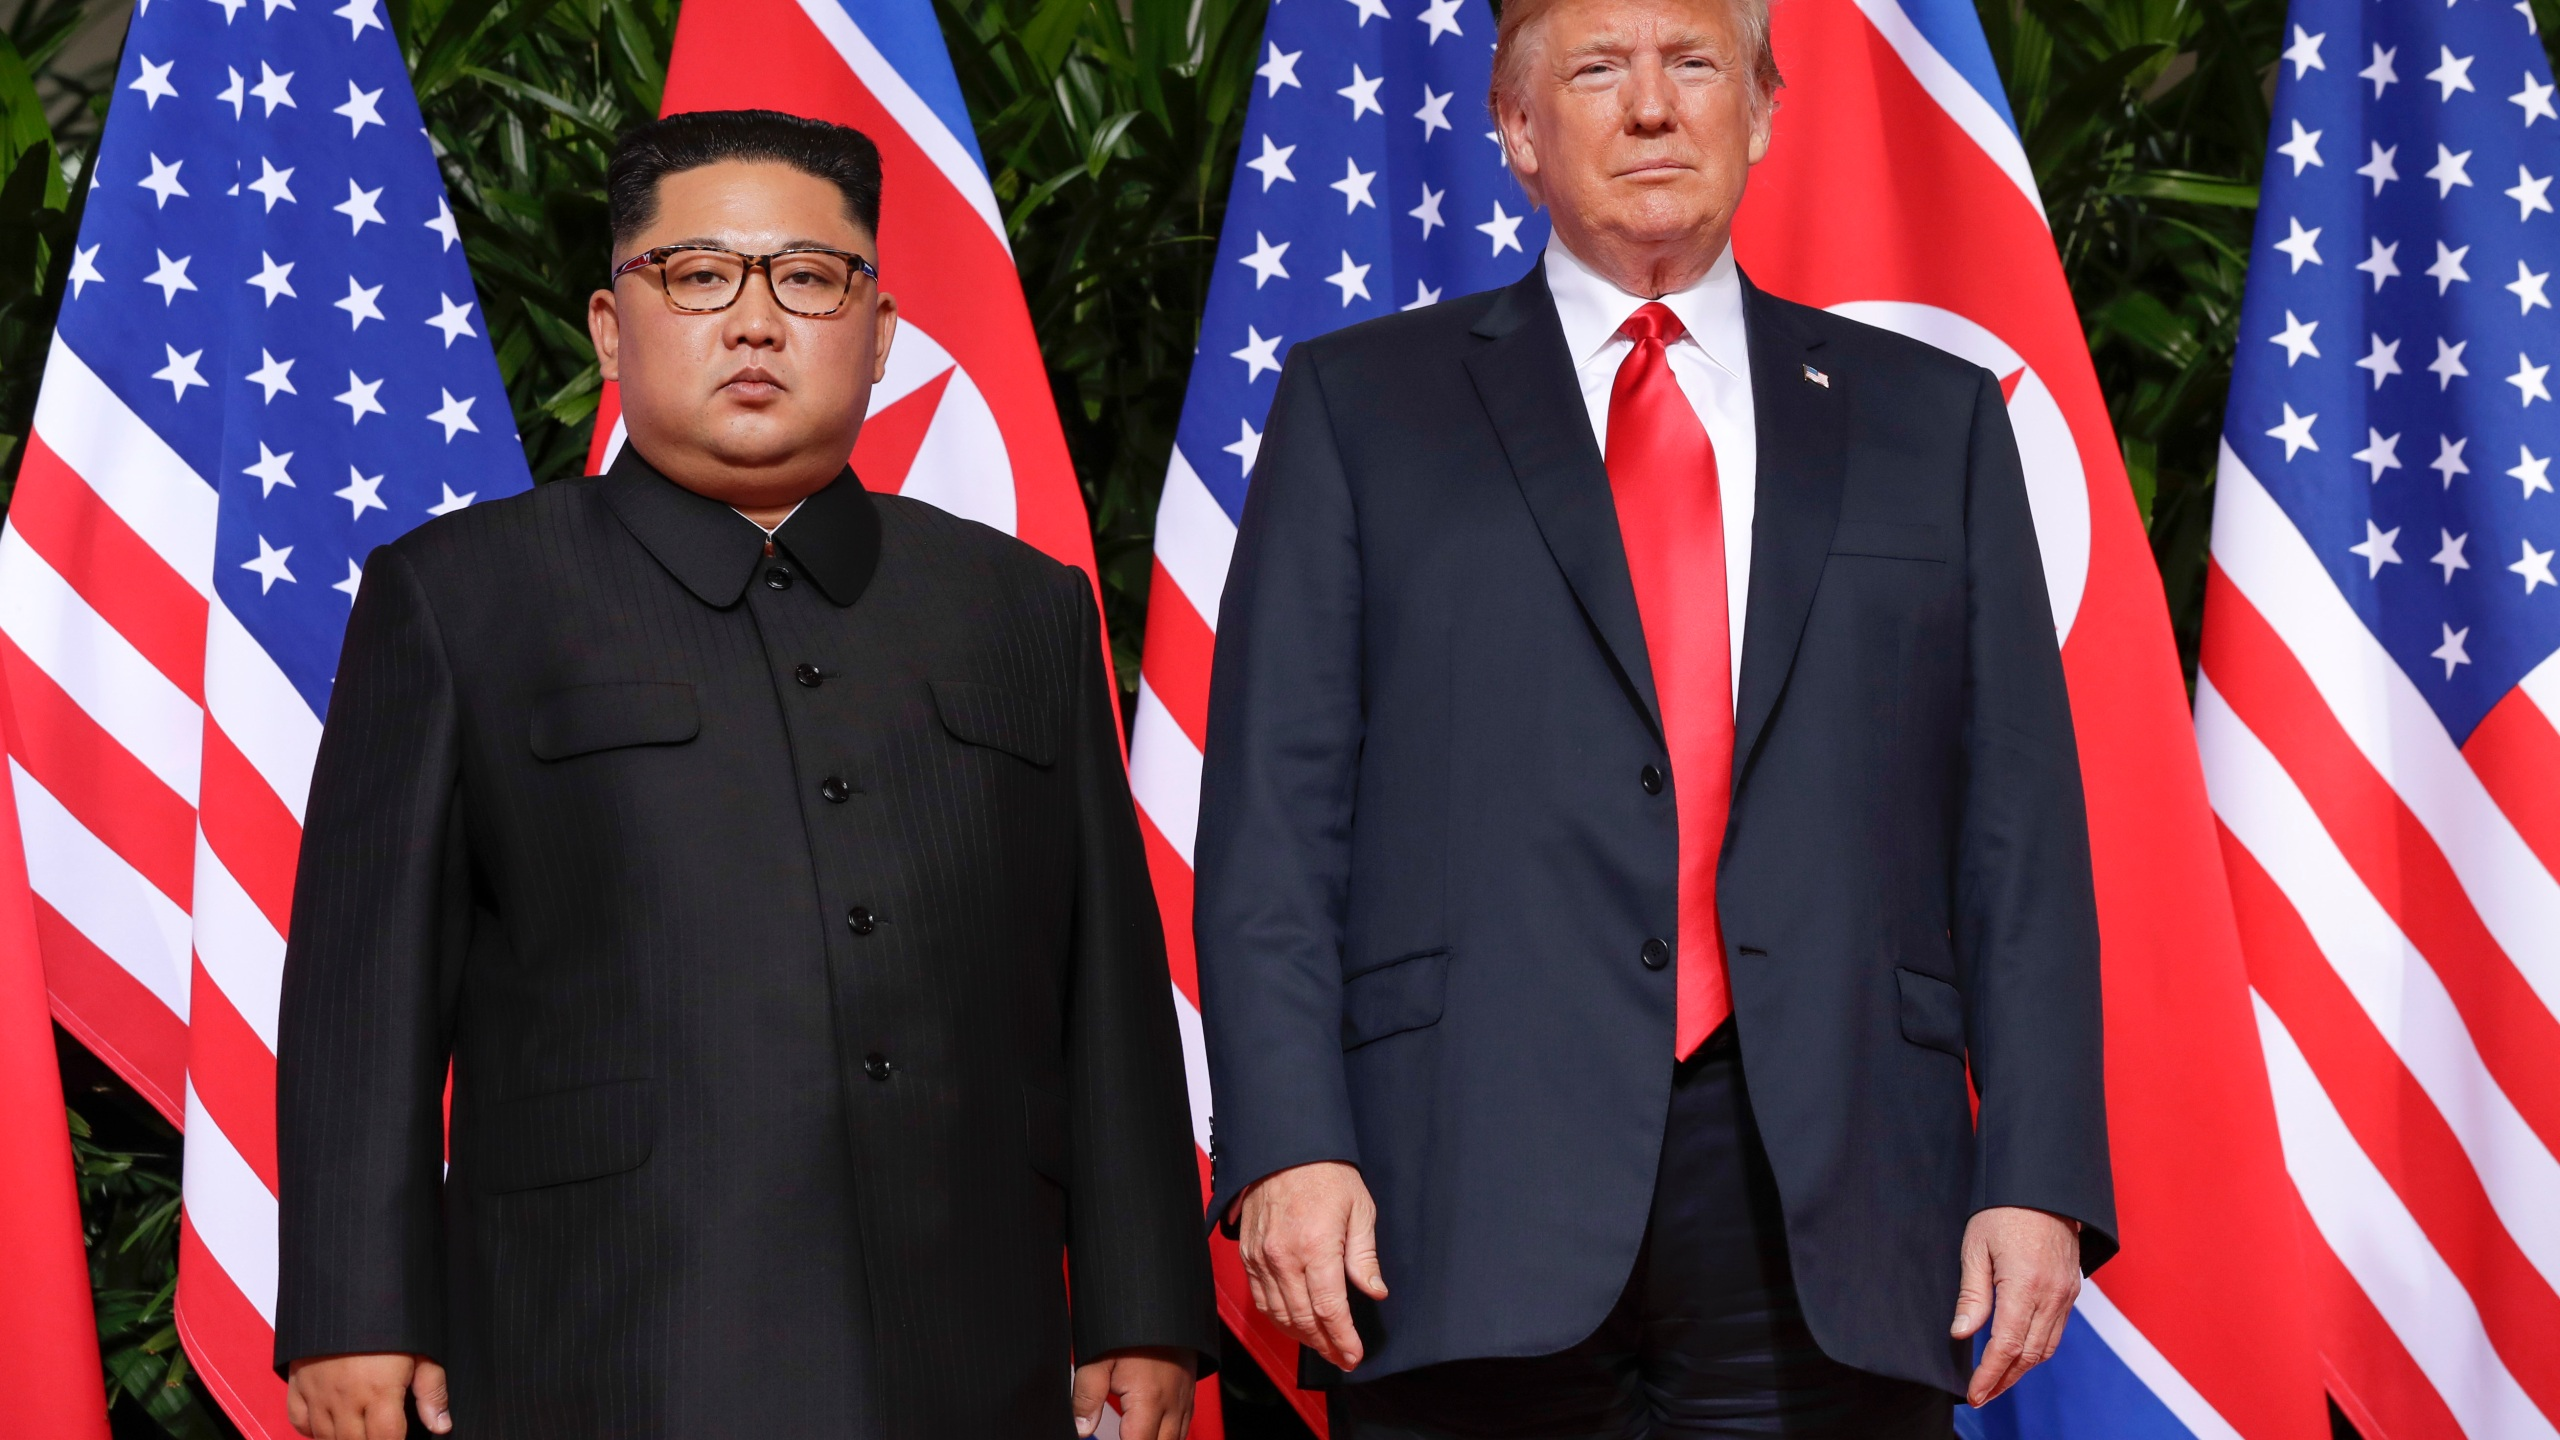 Trump_Kim_Summit_06768-159532.jpg03829450